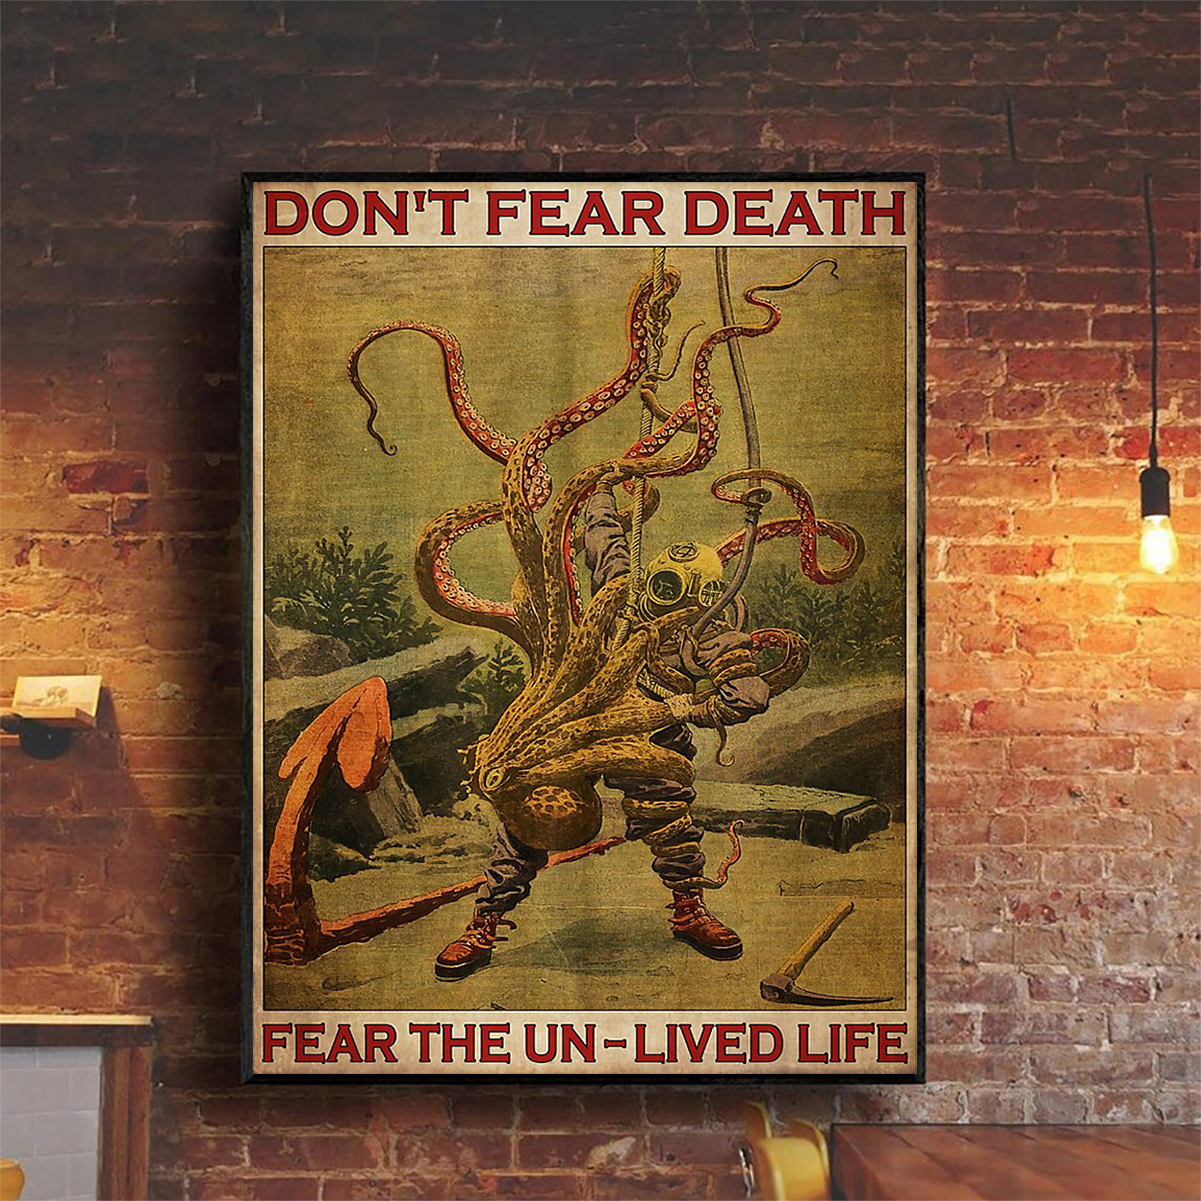 Diver and octopus don't fear death fear the un-lived life poster A1